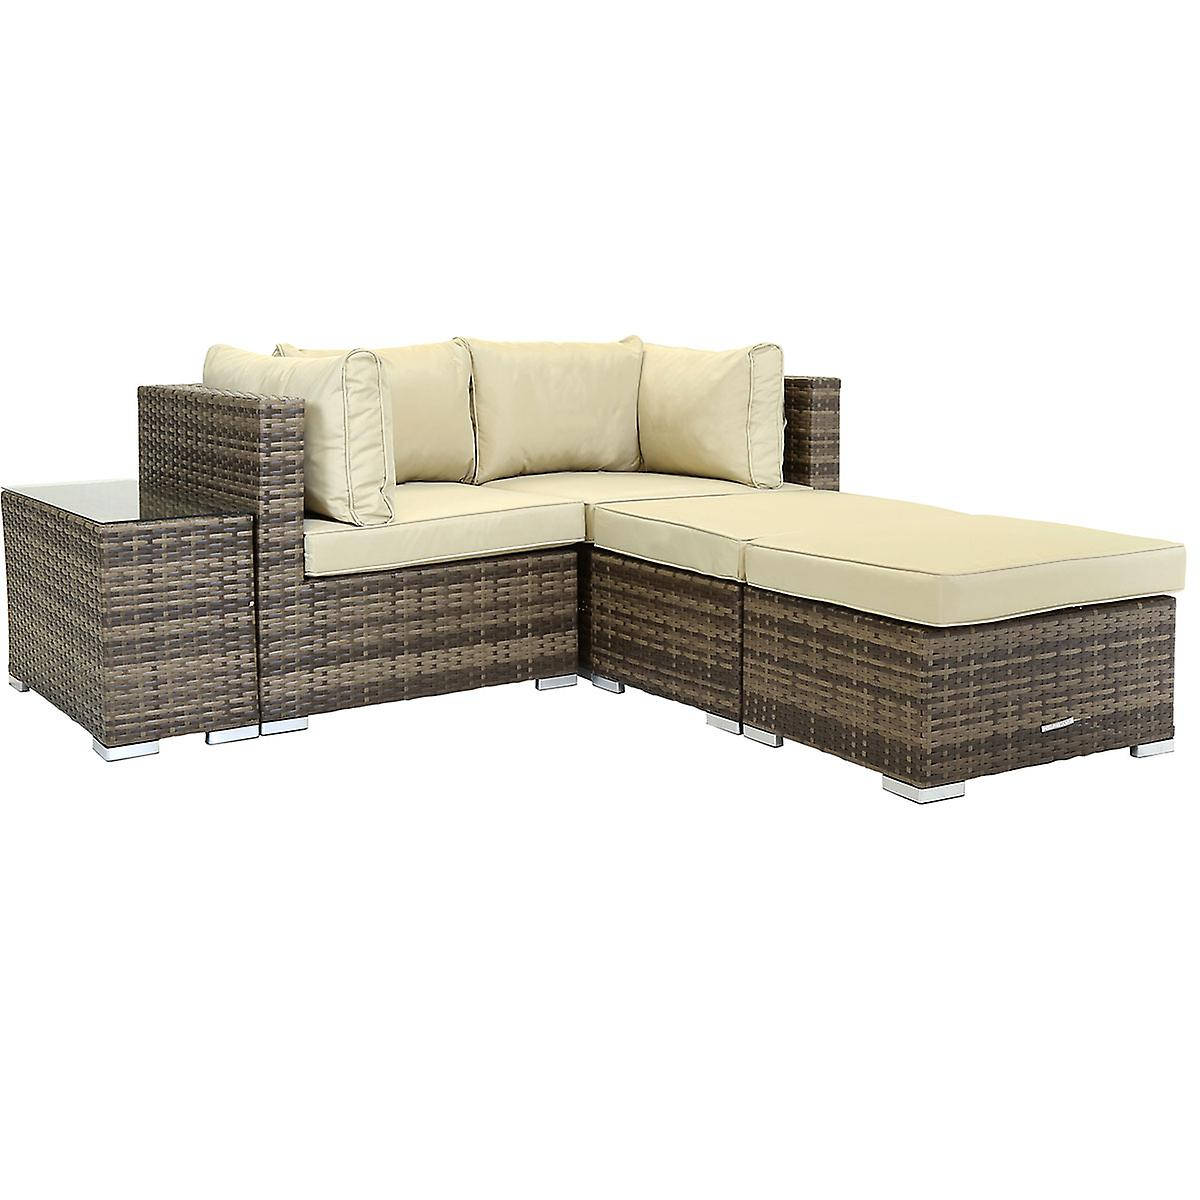 Charles Bentley 2 Seater Multifunctional Contemporary Rattan Outdoor Garden Lounge Set Love Seat, 2 Footstools, Coffee Table - Available In Brown Or Grey